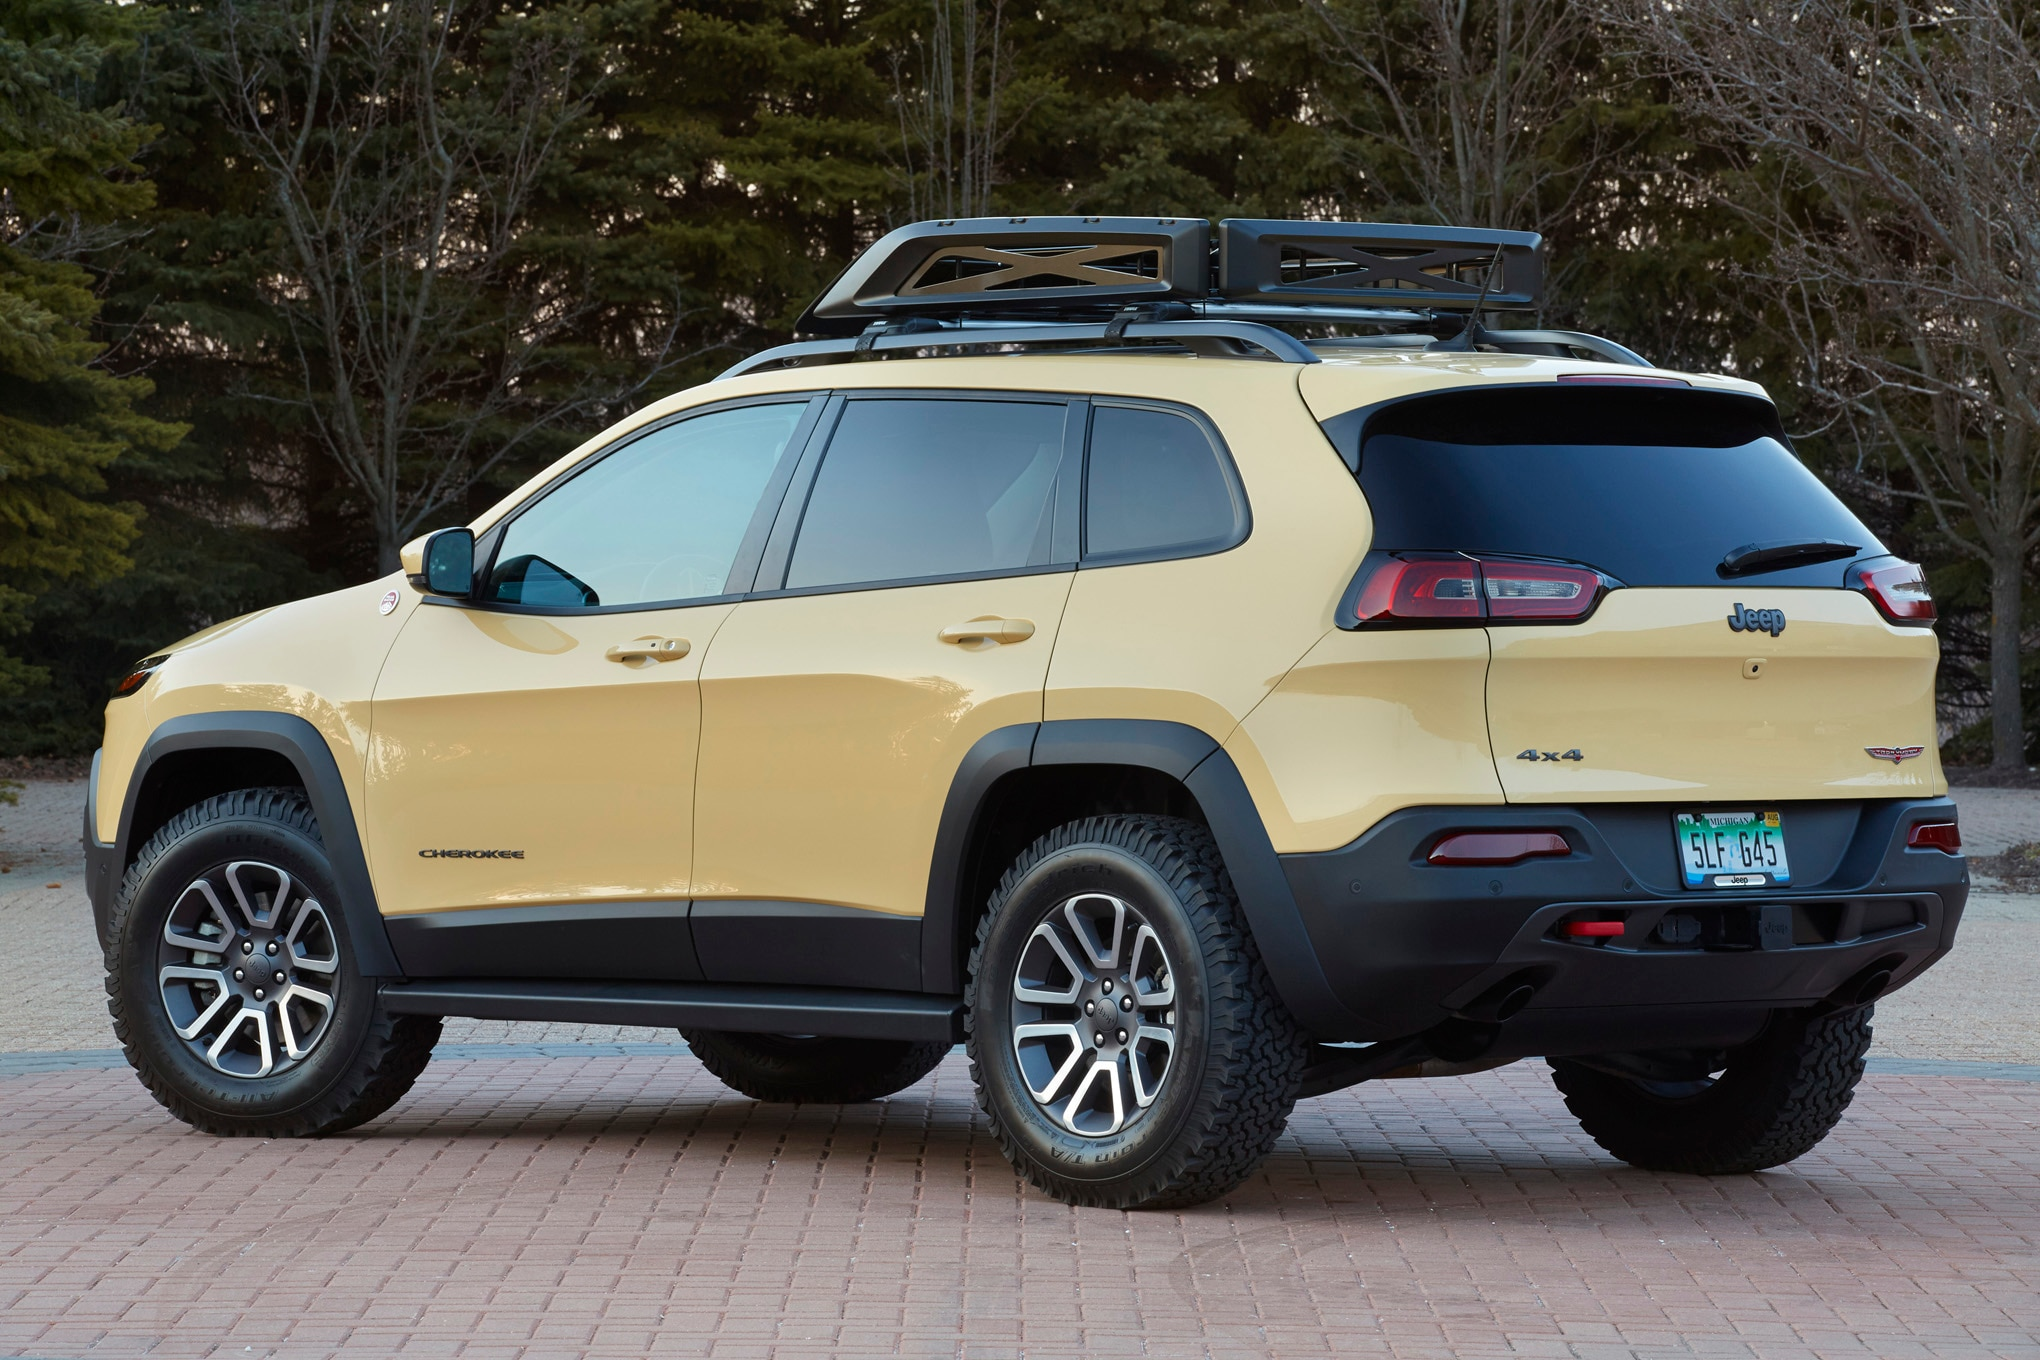 Jeep Cherokee Adventurer Concept rear three quarters